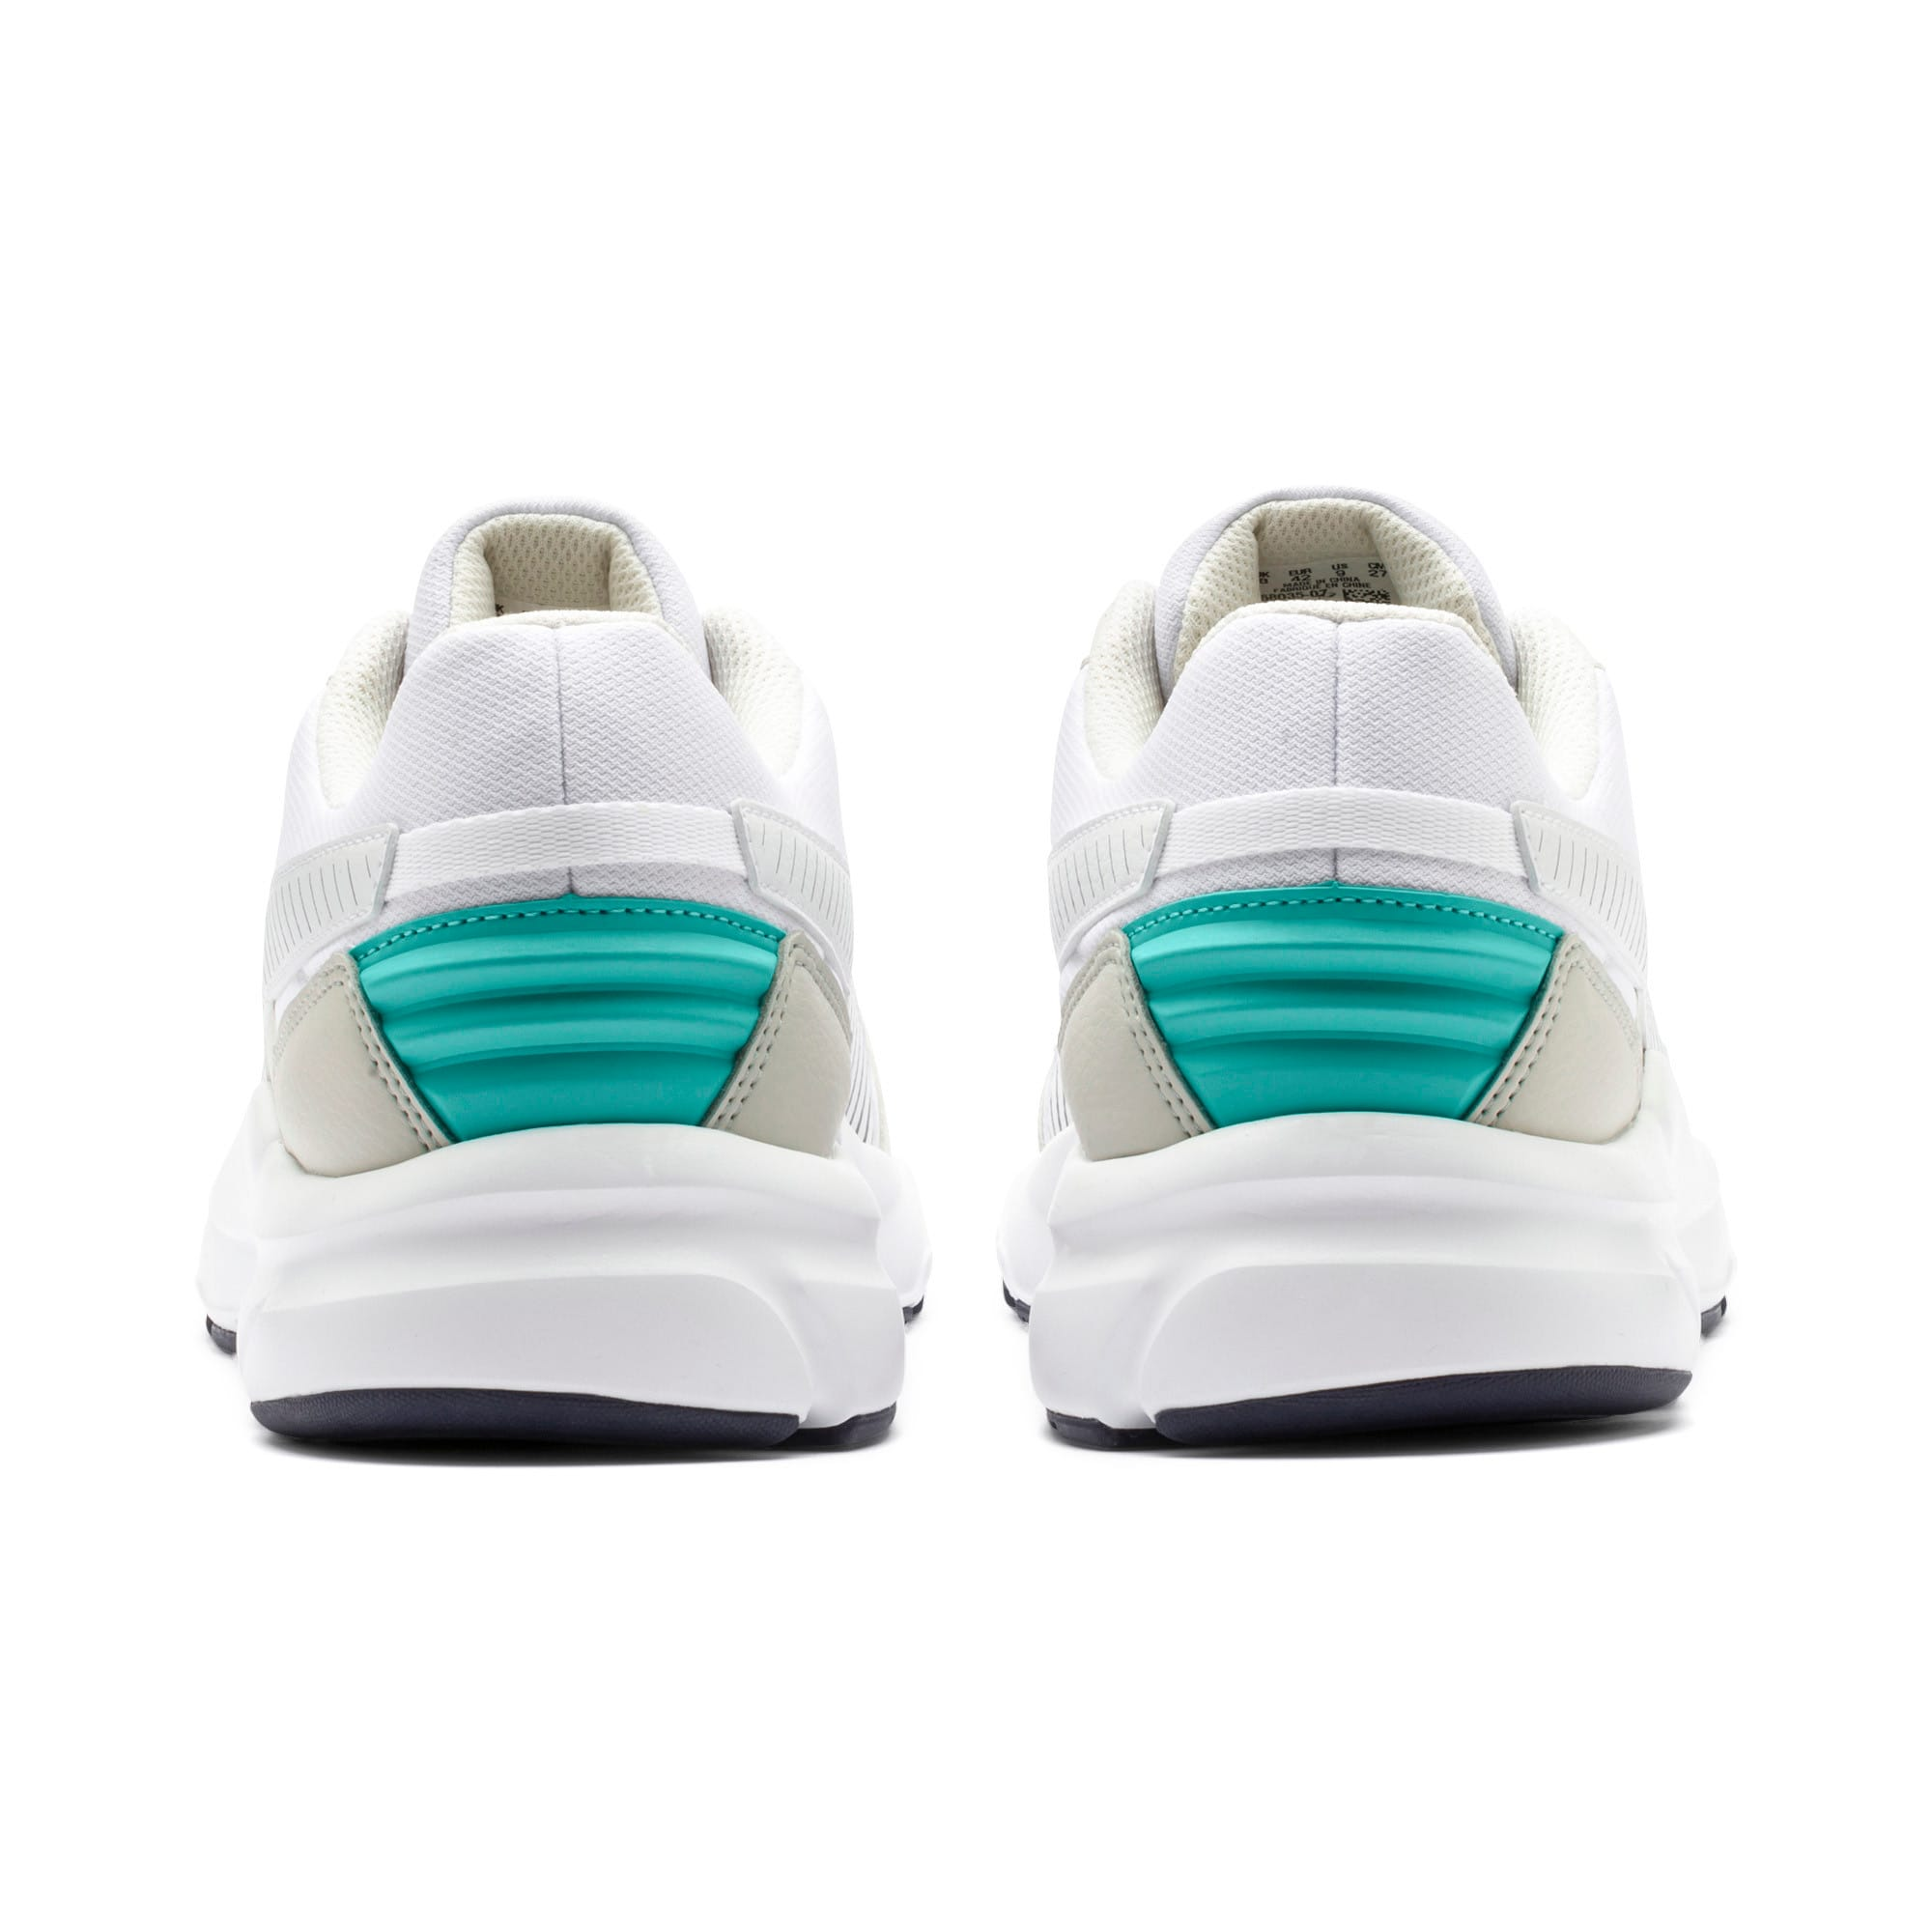 Thumbnail 4 of Future Runner Running Shoes, Wht-G Gray-Peacoat-Turquoise, medium